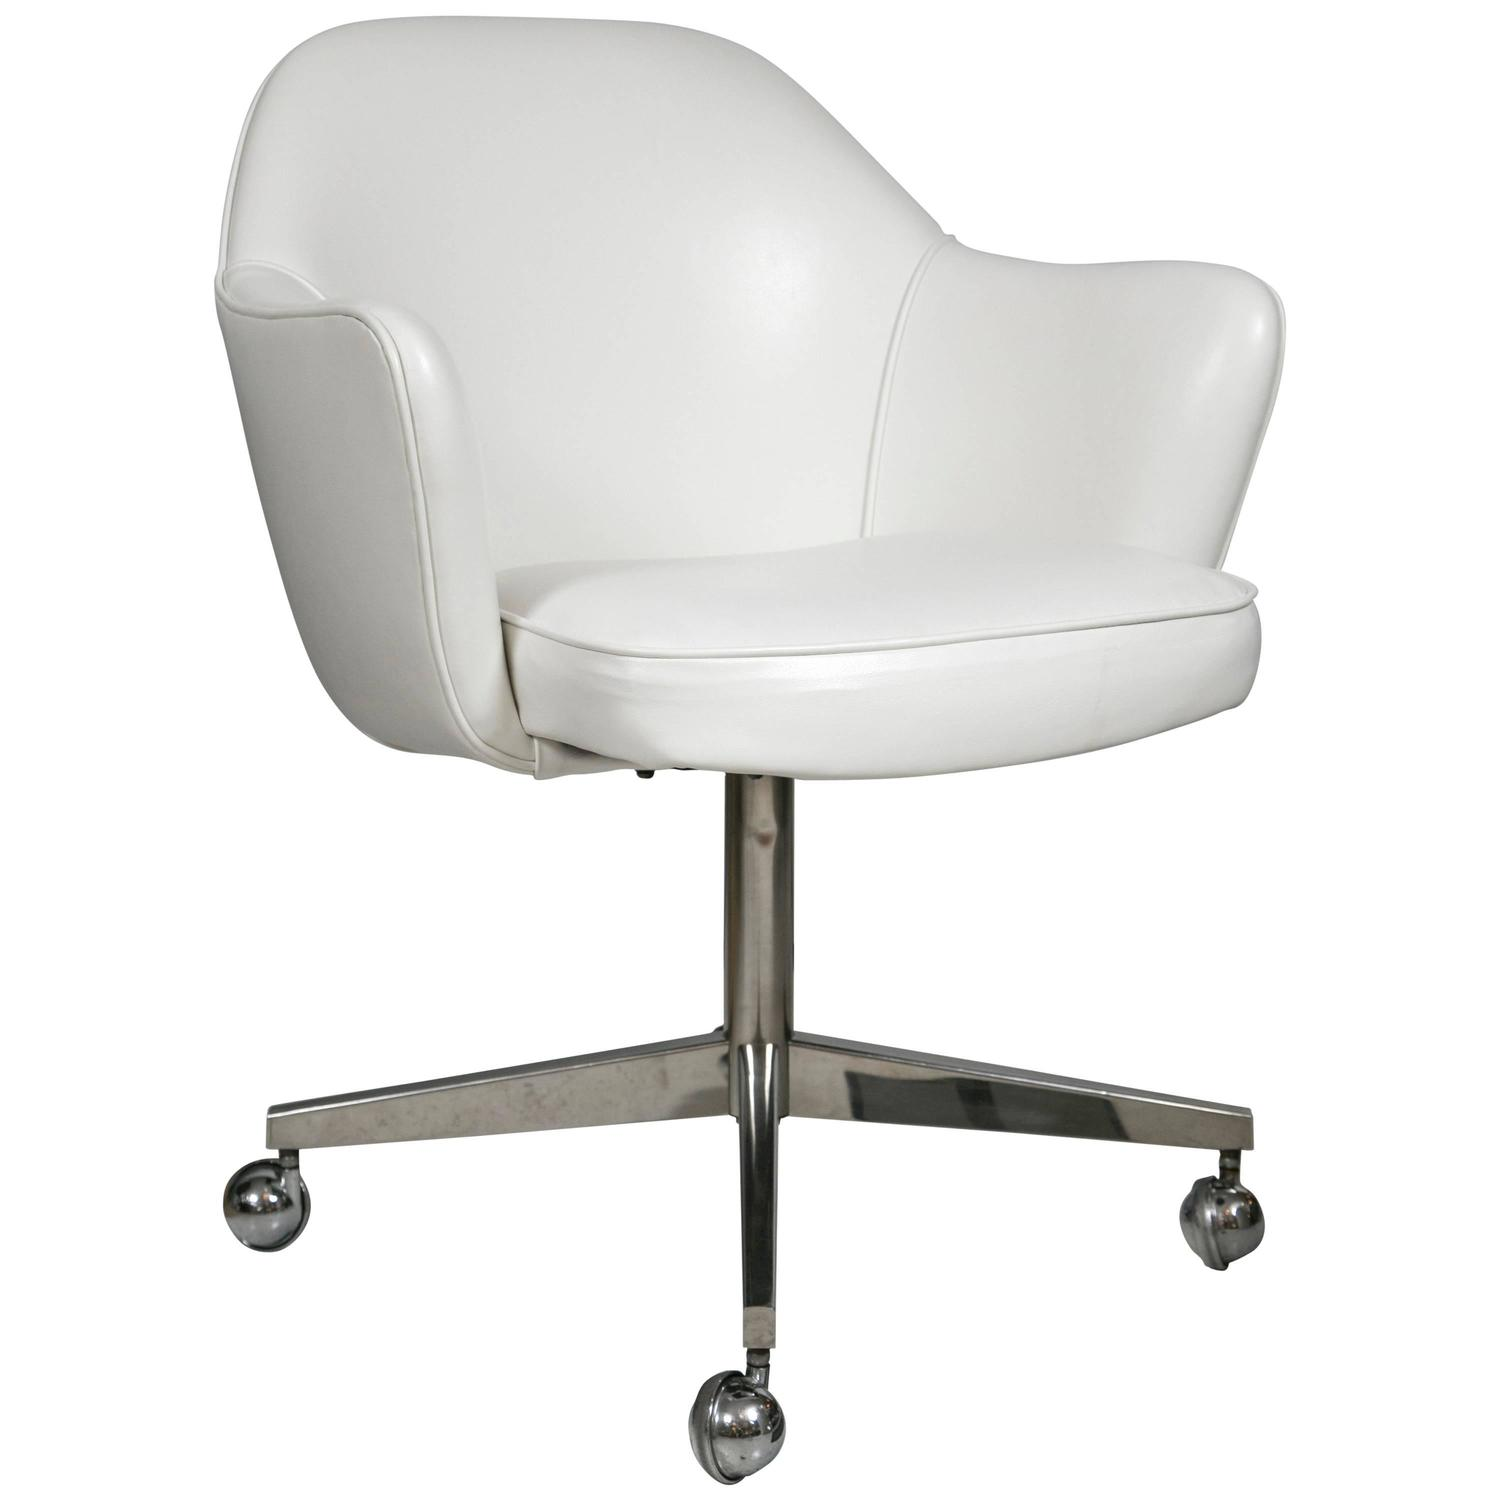 Knoll Desk Chair in White Leather For Sale at 1stdibs